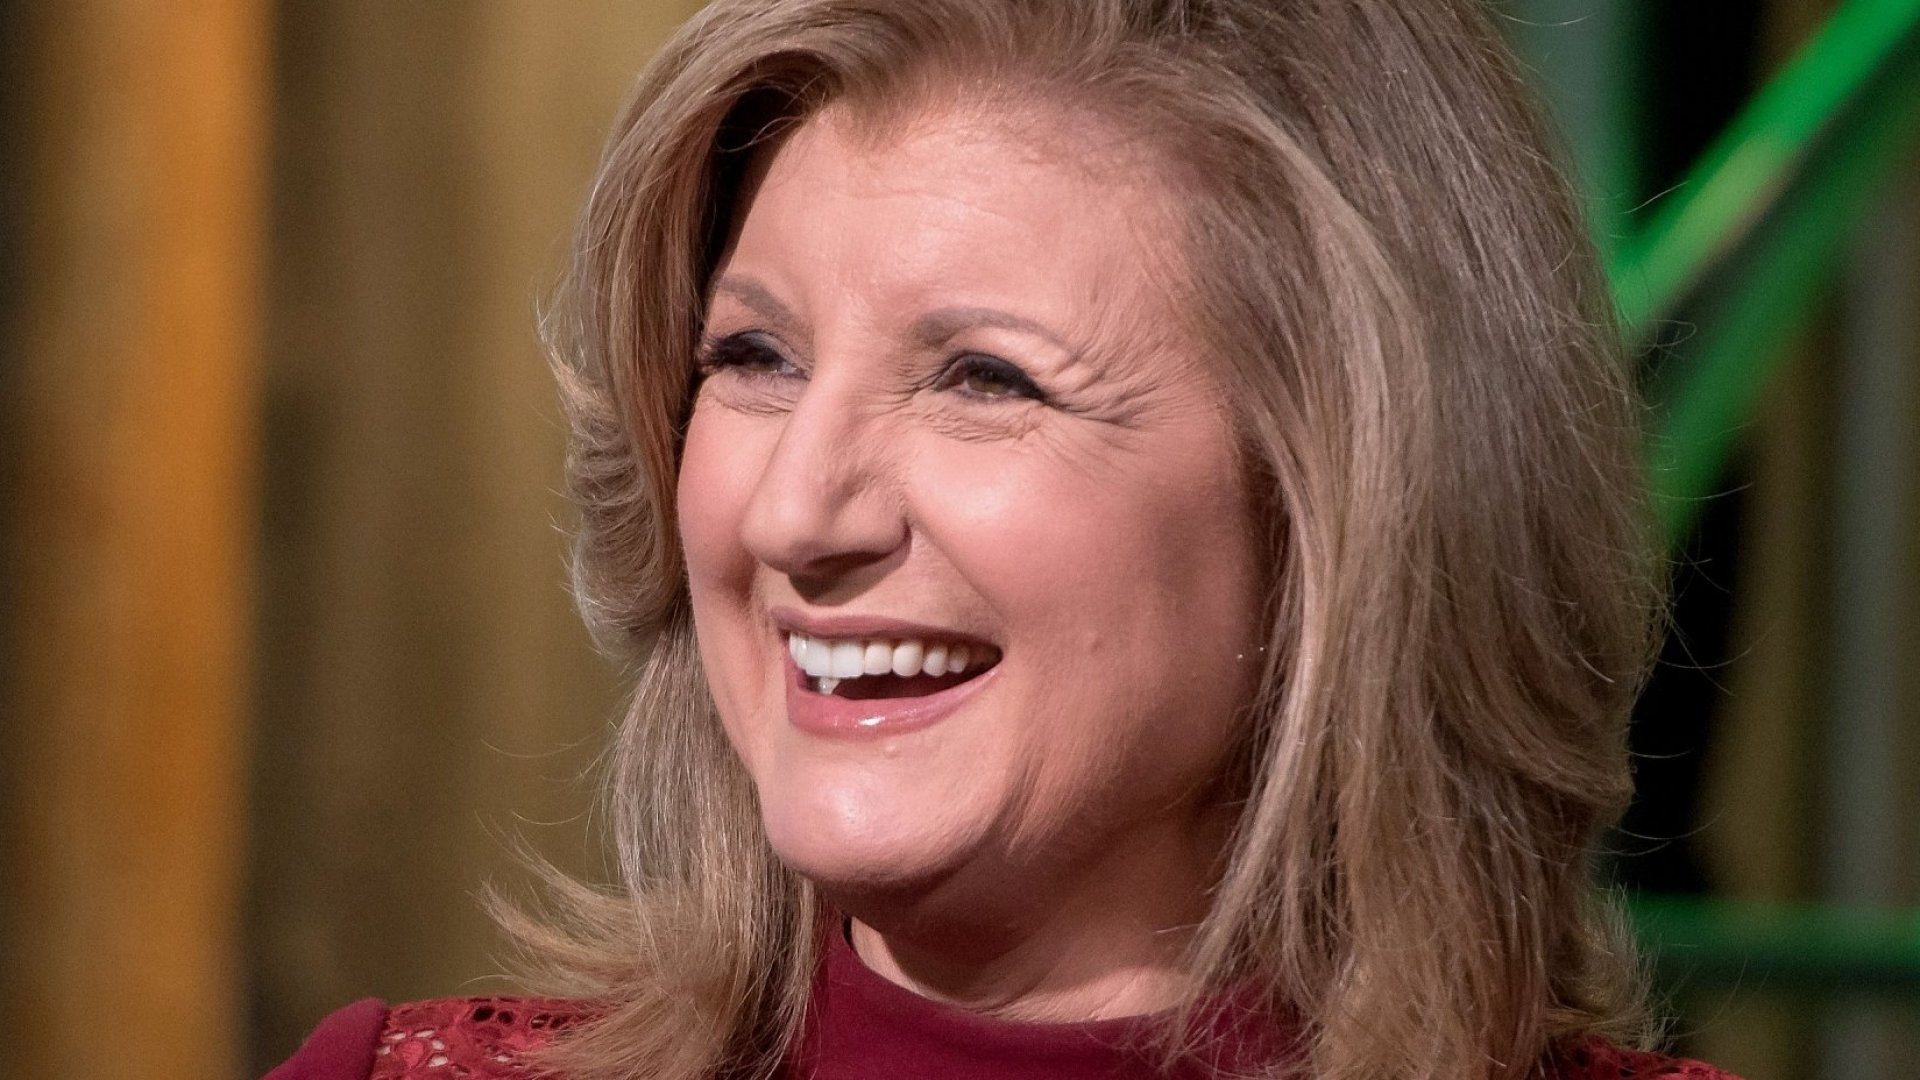 Arianna Huffington speaks on stage at the 8th Annual Women in the World Summit at Lincoln Center for the Performing Arts on April 6, 2017 in New York City.